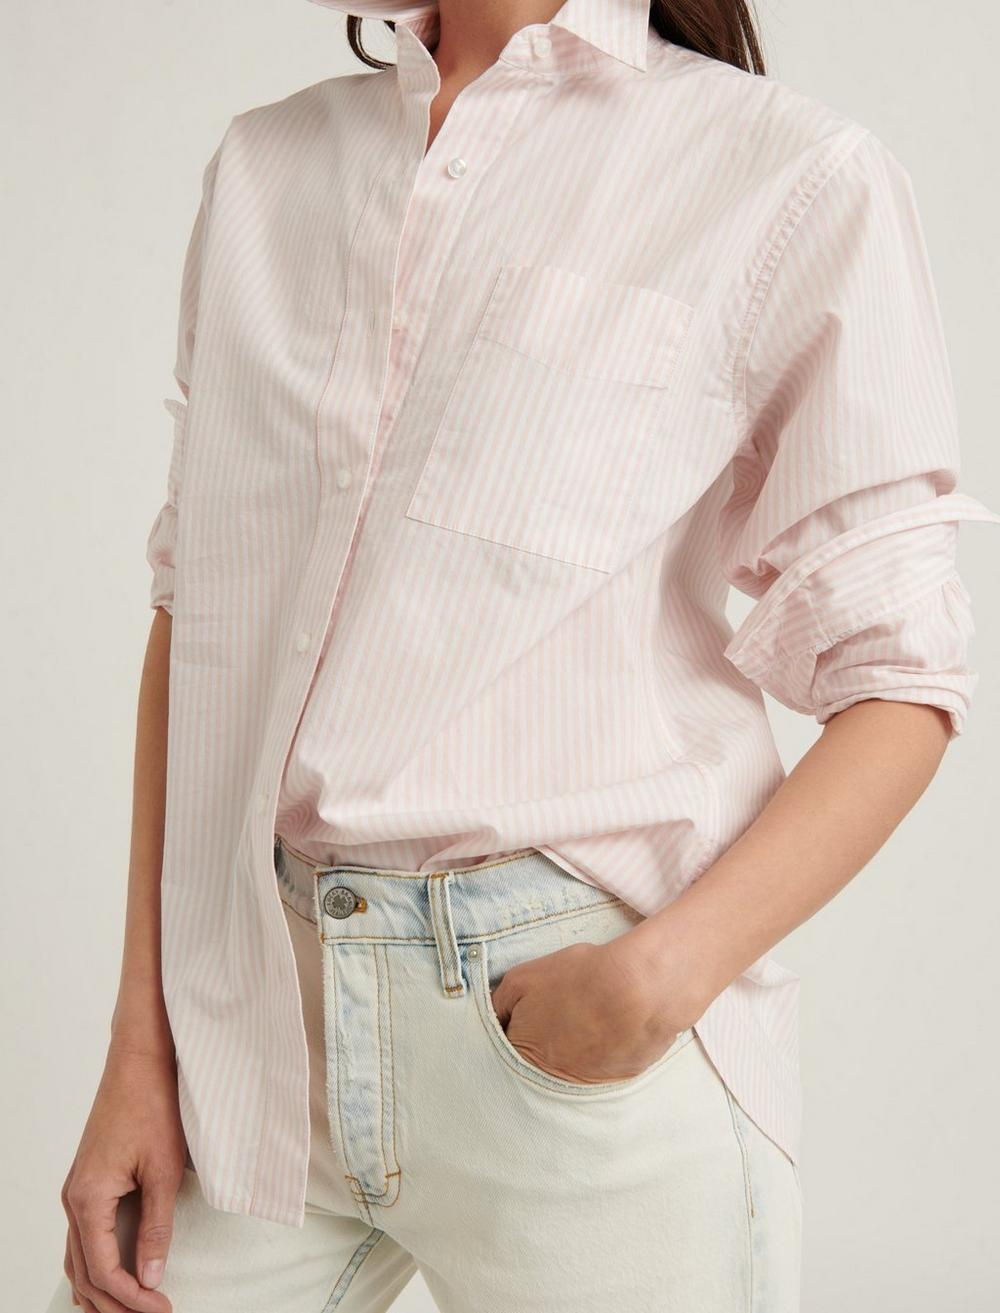 RELAXED SHIRT, image 5